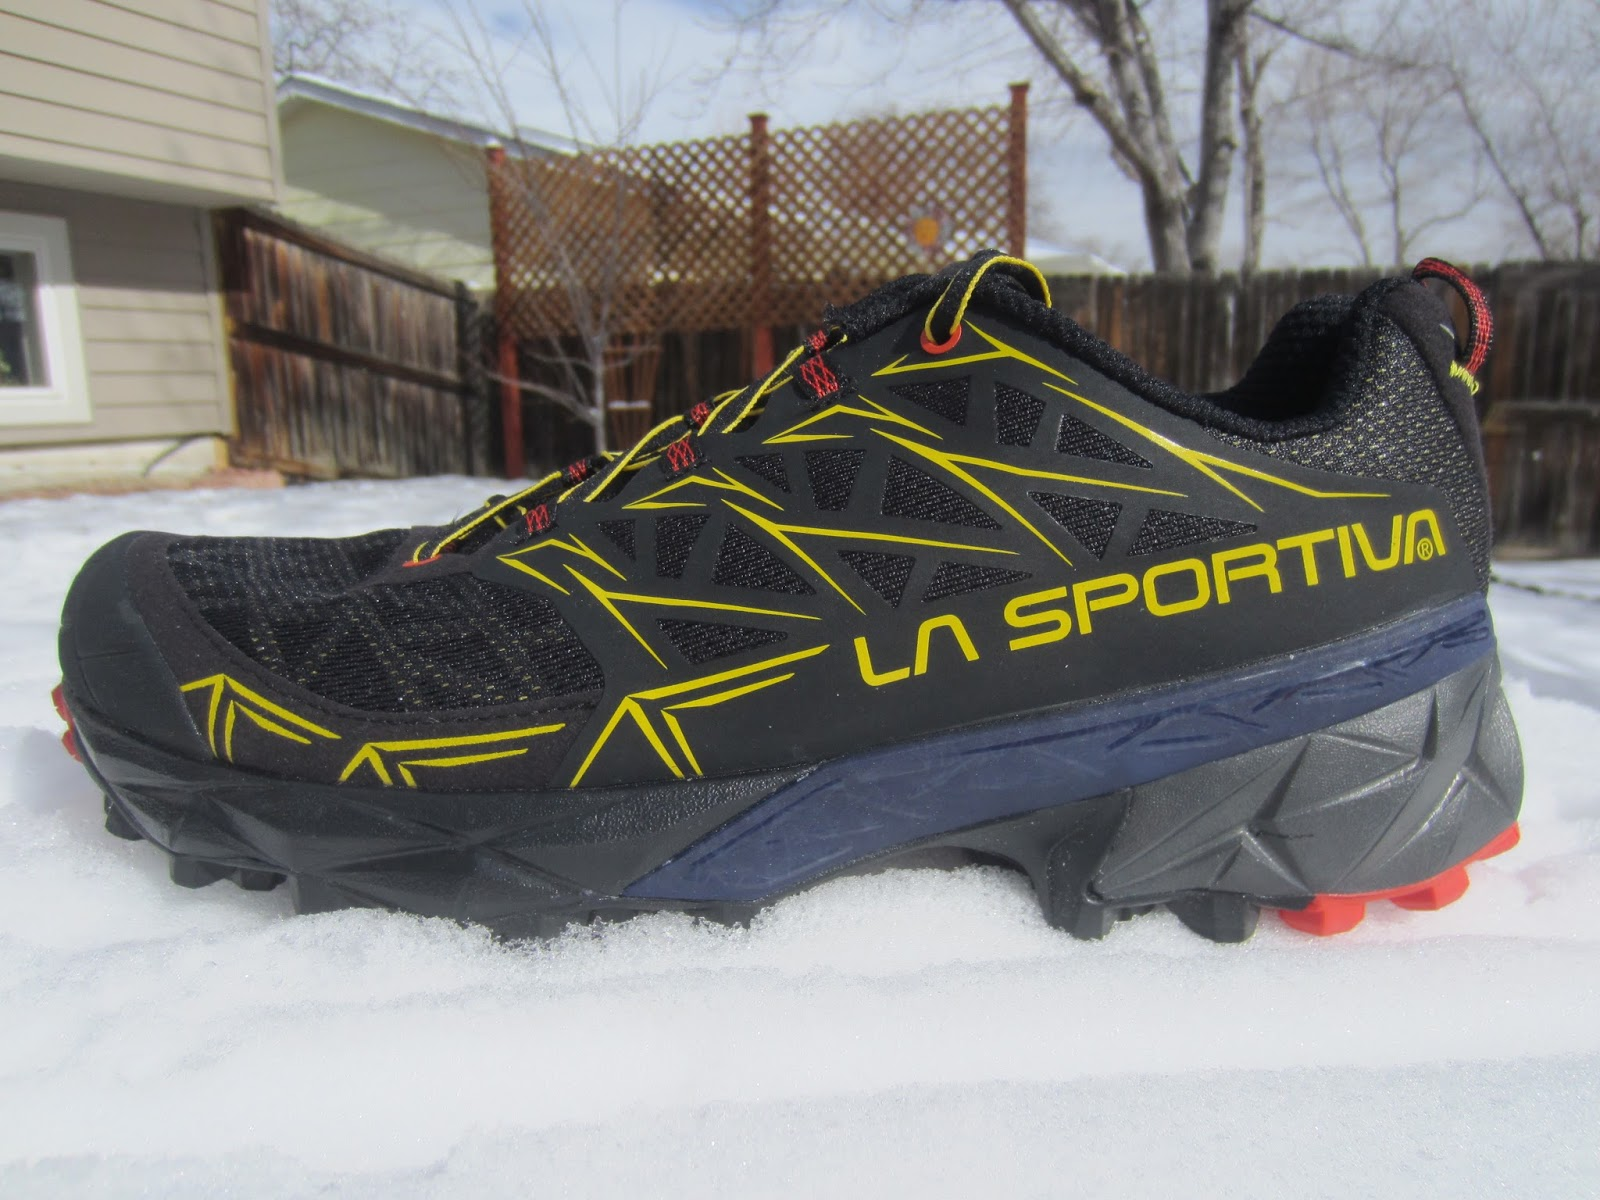 a2c19d78186 Fit is quite accommodating and generous for a La Sportiva shoe with a wide  throat and not overly narrow toe box as is often the case with other model  La ...